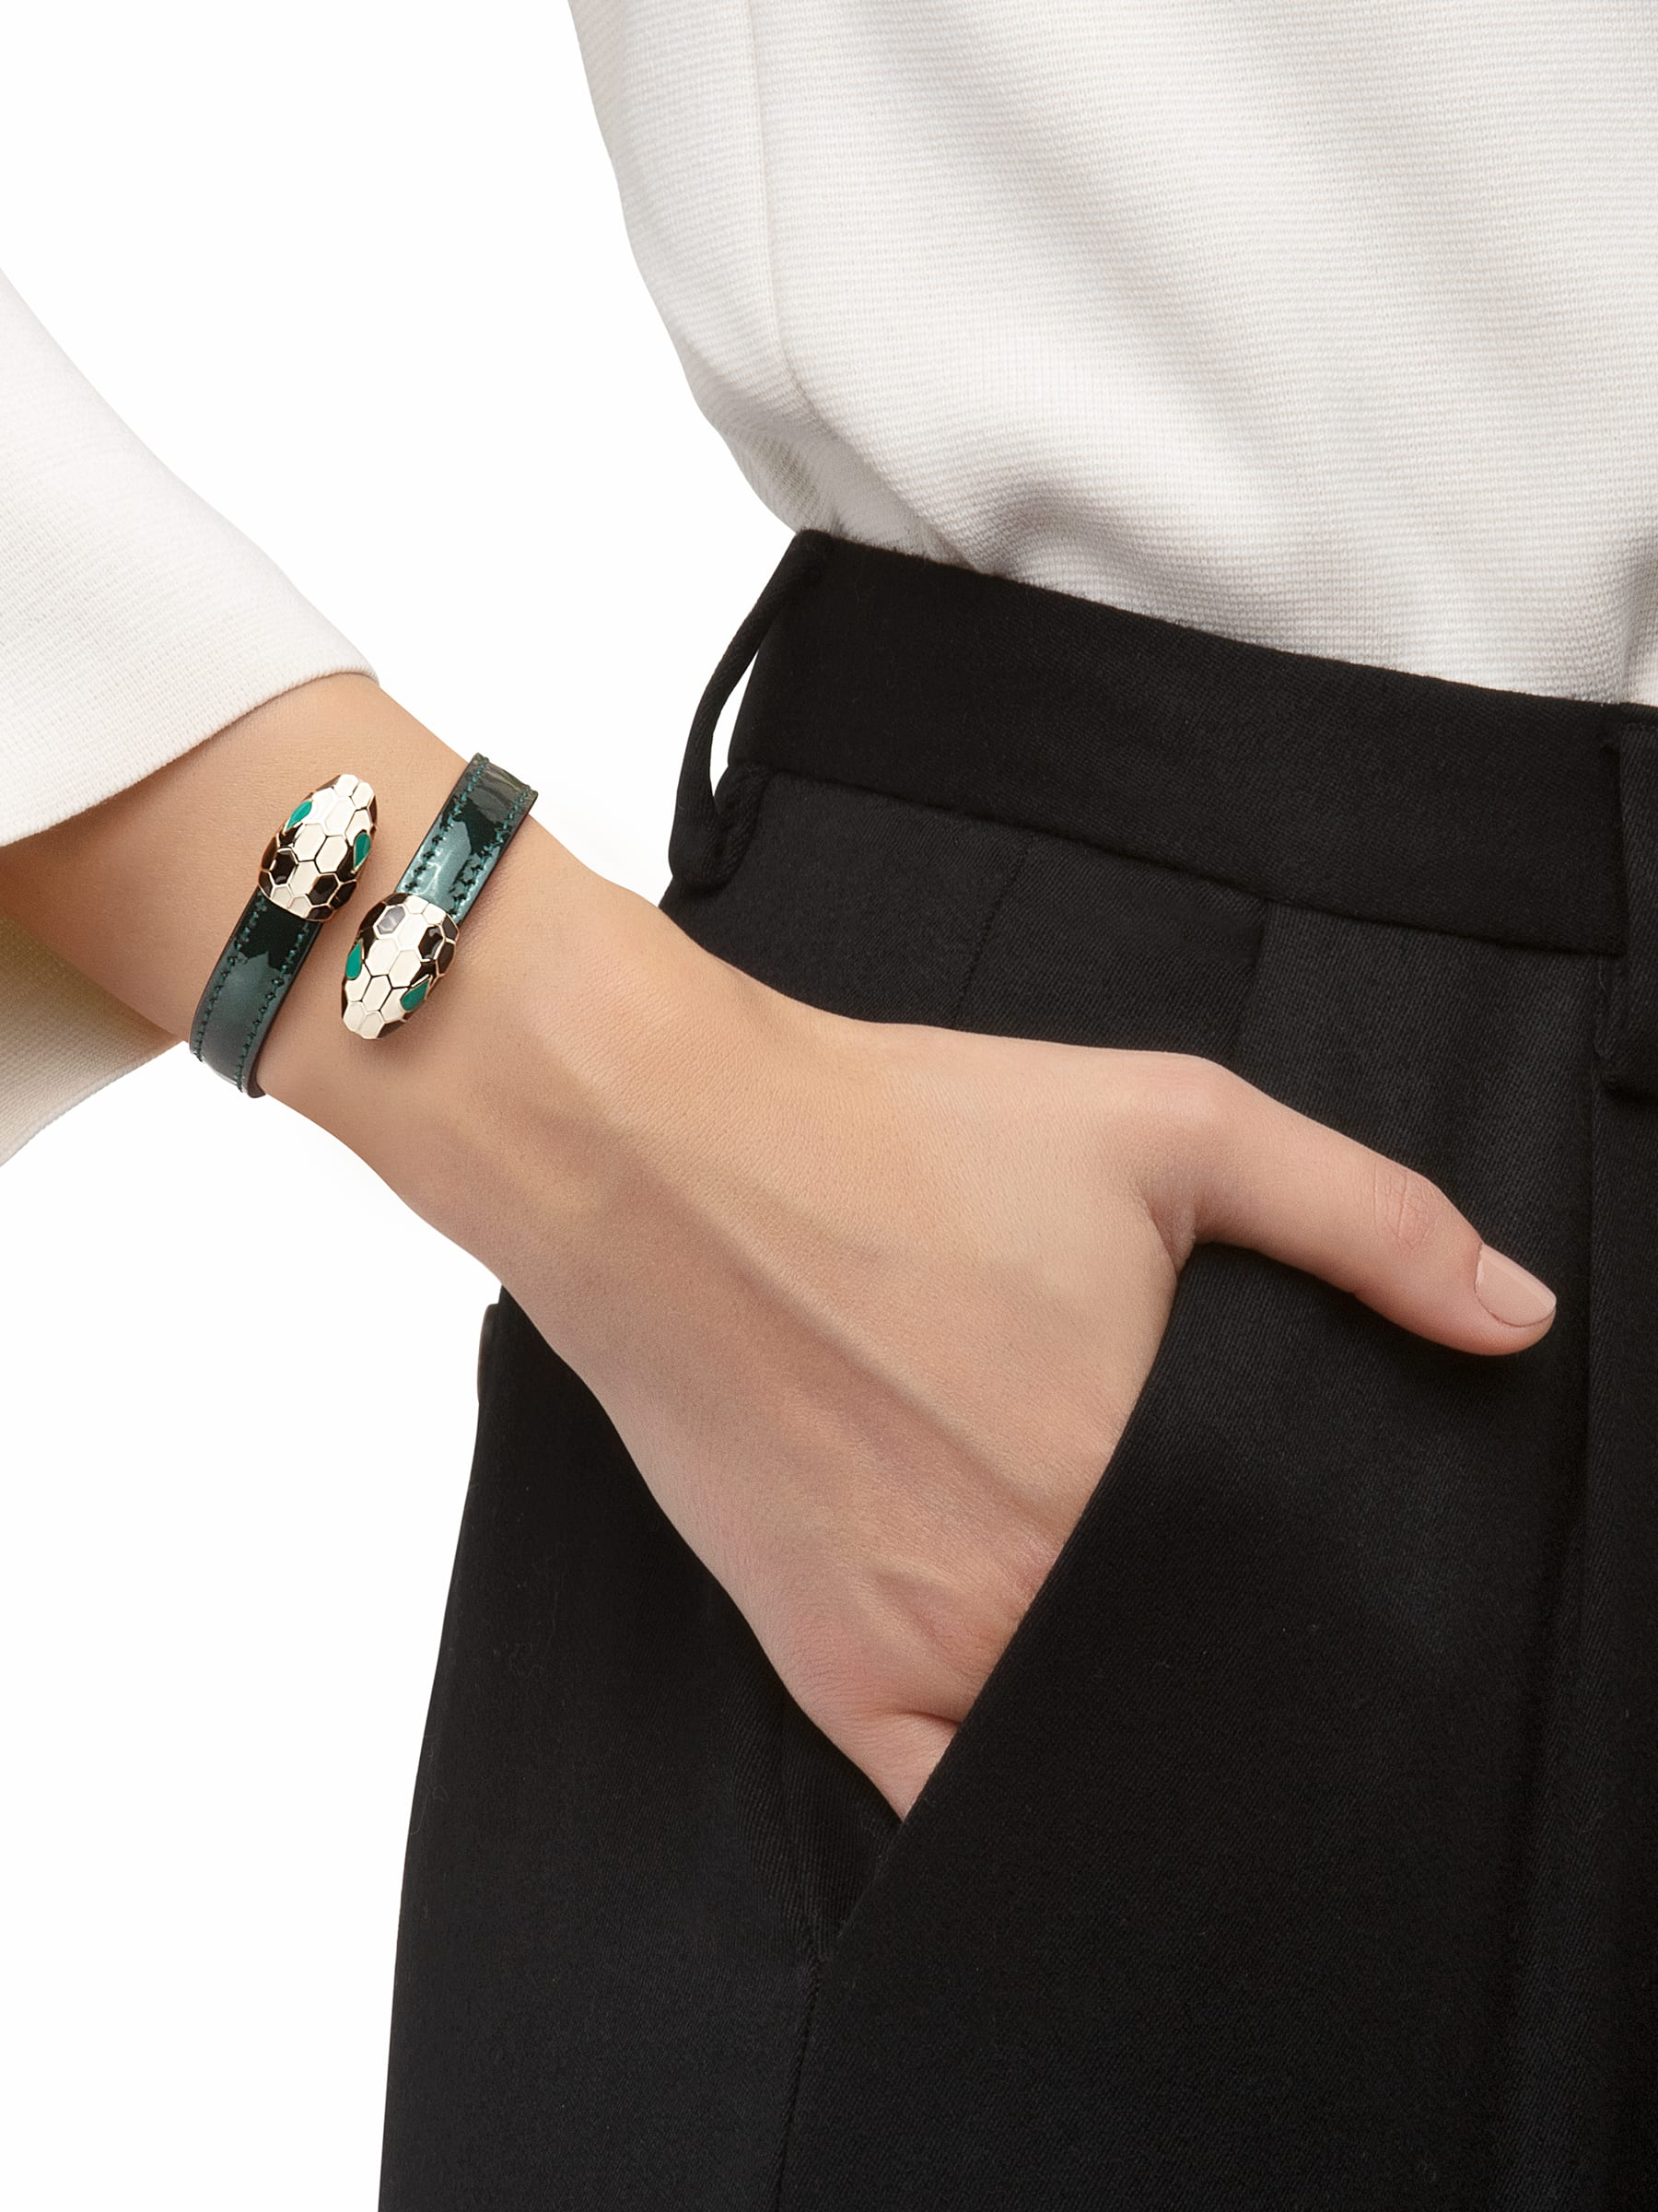 Serpenti Forever soft bangle bracelet in shiny silver brushed metallic calf leather, with brass light gold plated hardware. Iconic contraire snakehead décor in black and white enamel, with green enamel eyes. SerpSoftContr-BMCL-FE image 2